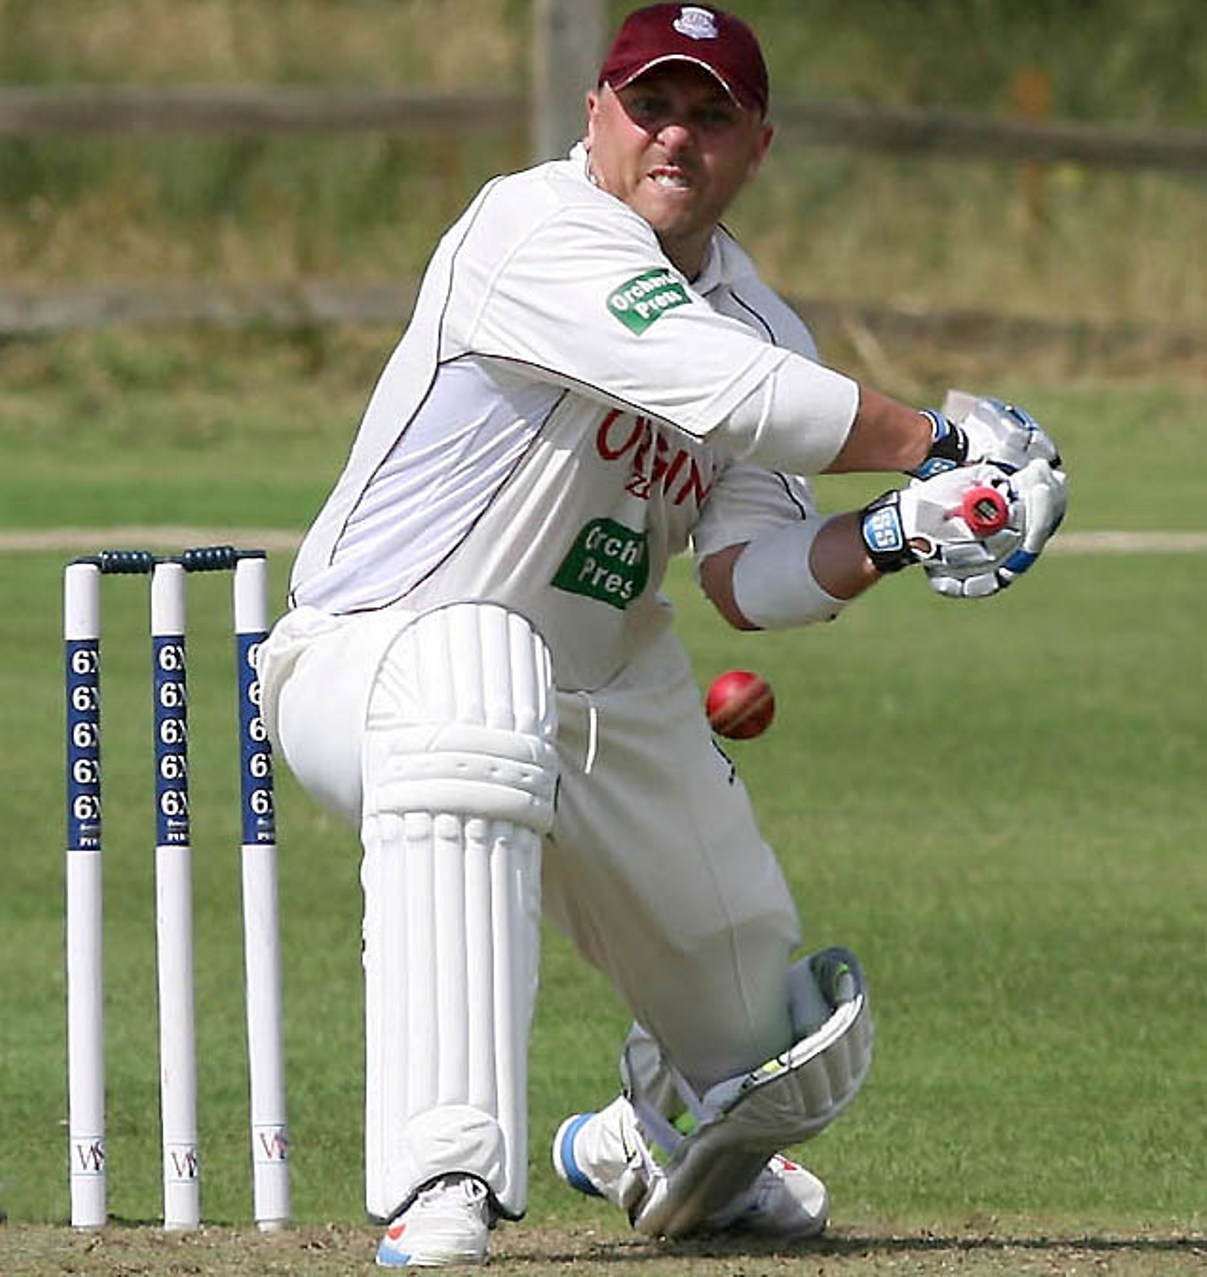 CRICKET: Lechlade captain Breet answers Wiltshire selectors with classy 85